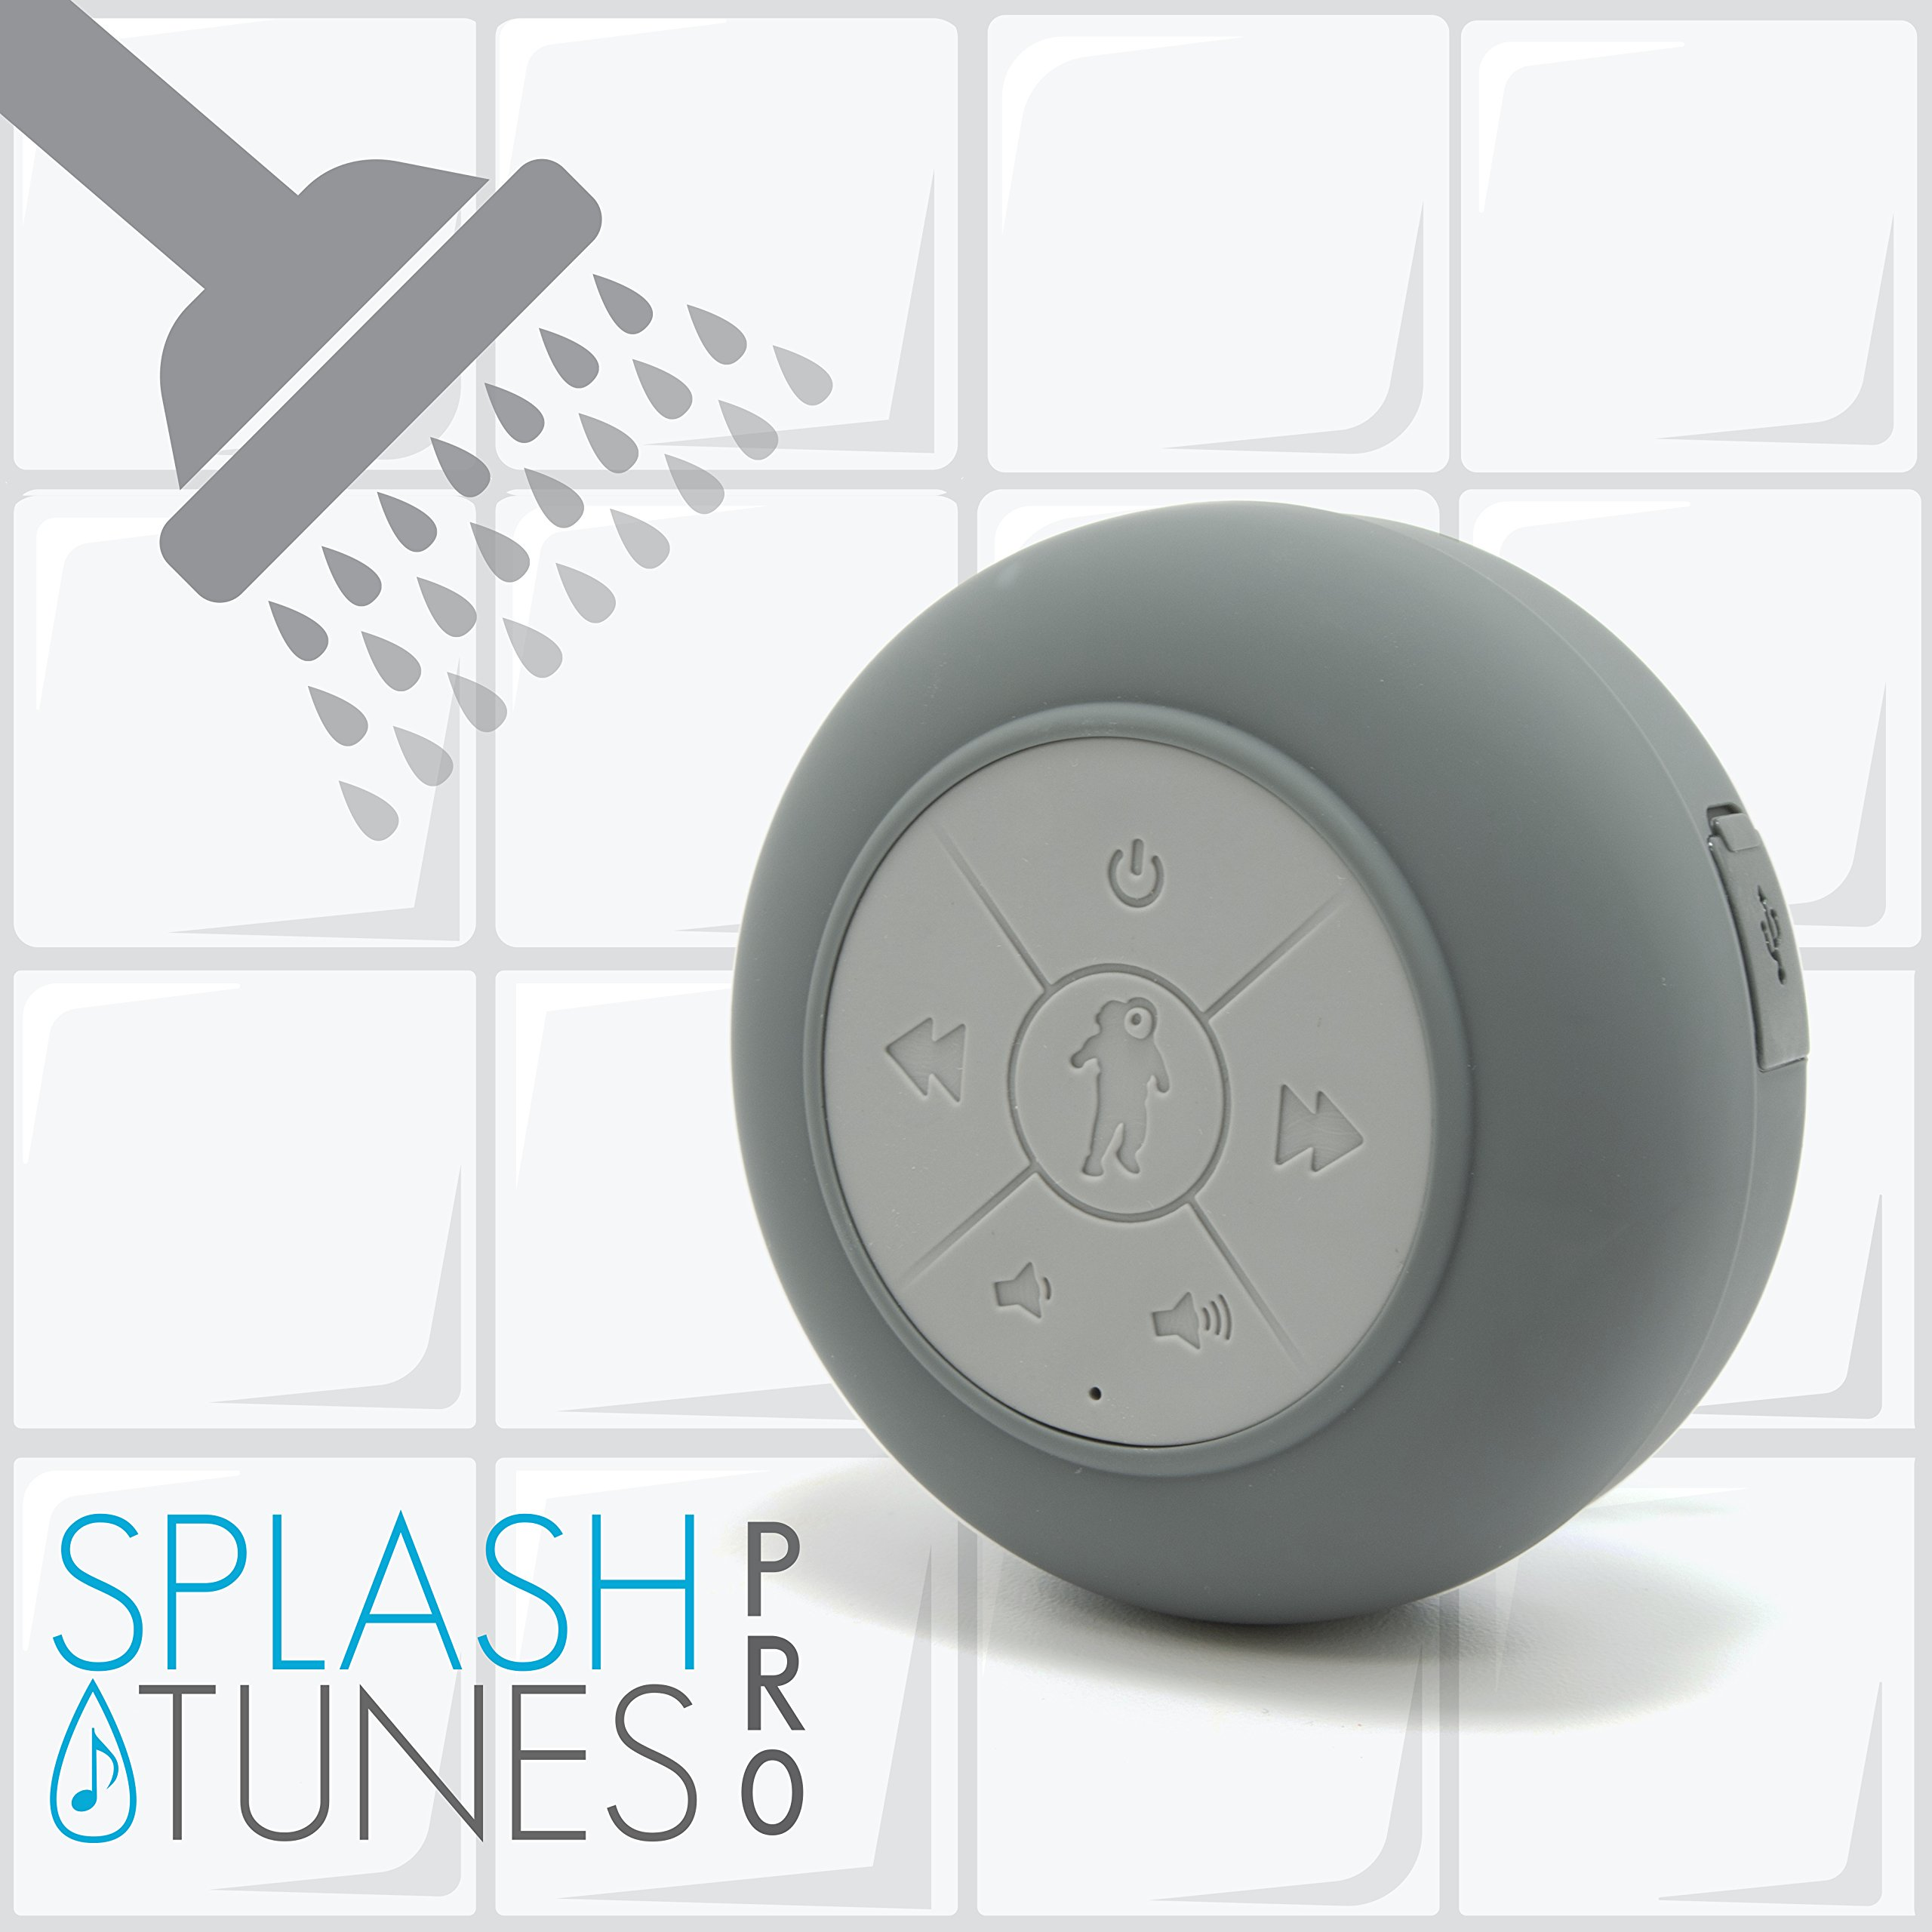 FRESHeTECH Waterproof Bluetooth Shower Speaker Splash Tunes - Portable, Hands Free, Wireless, Water Resistant, Shower Speaker with Built-in Mic and Suction Cup